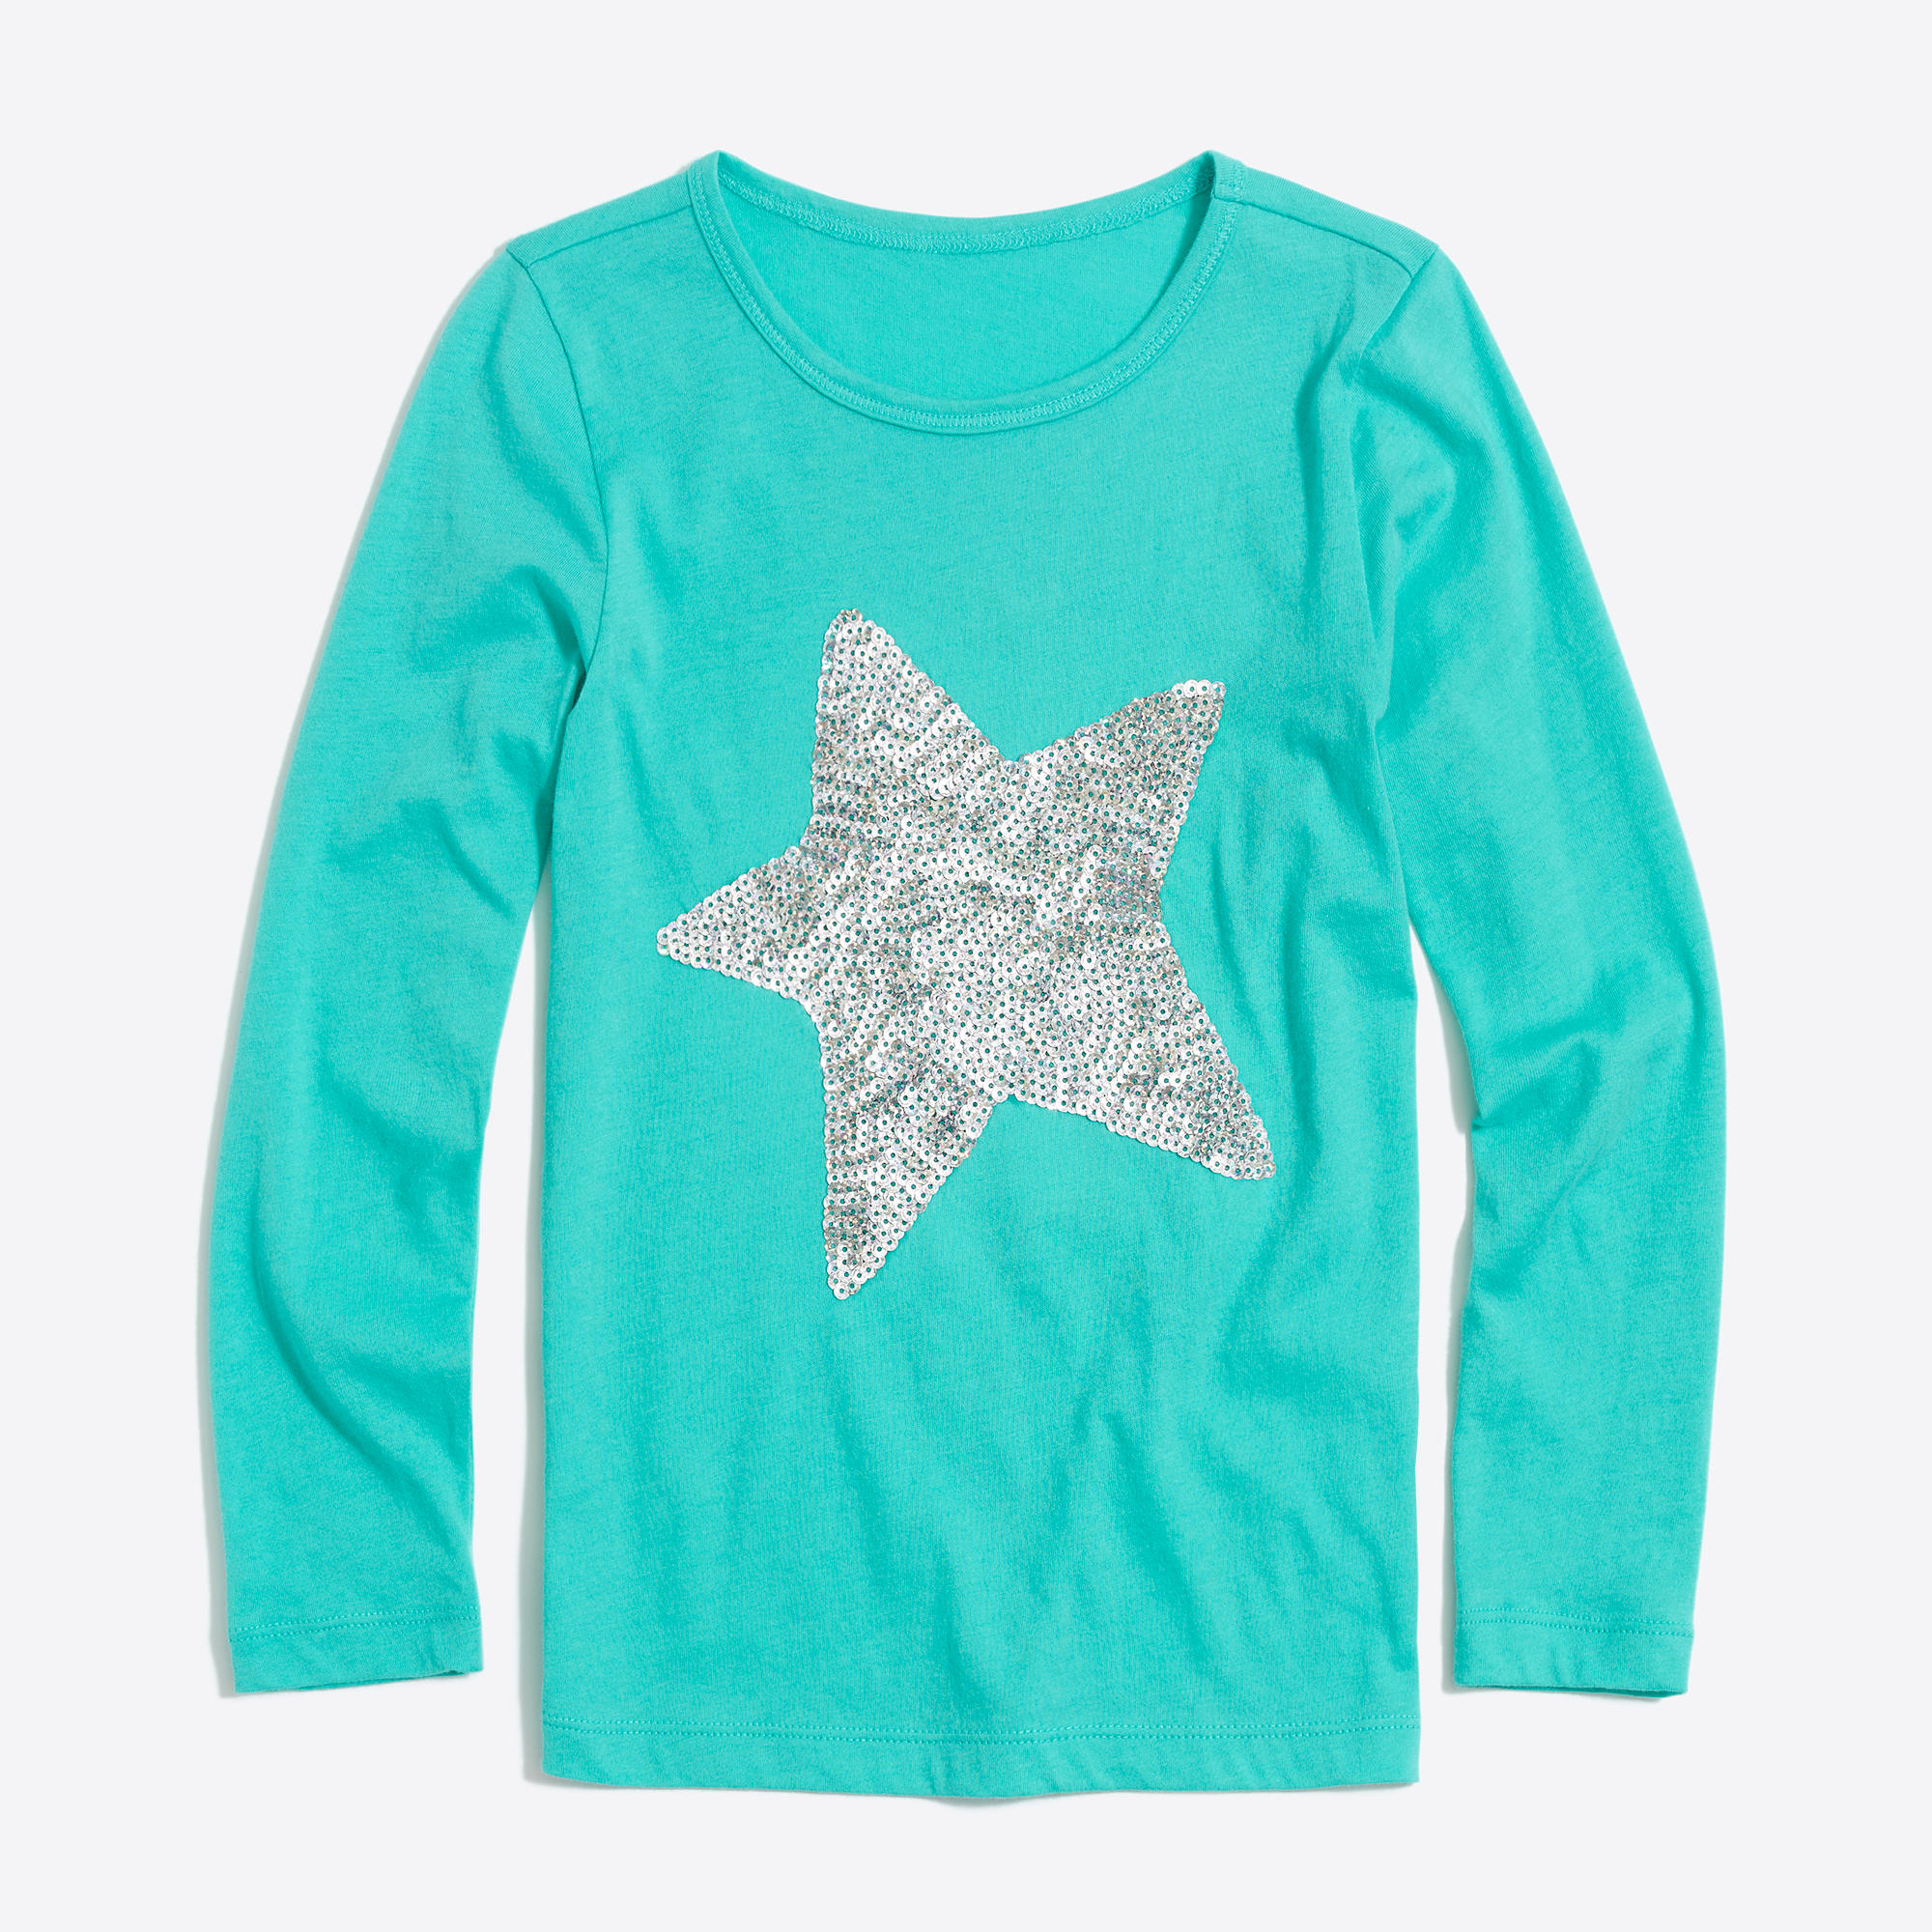 Girls 39 long sleeve sequin star keepsake t shirt for Girls sequin t shirt